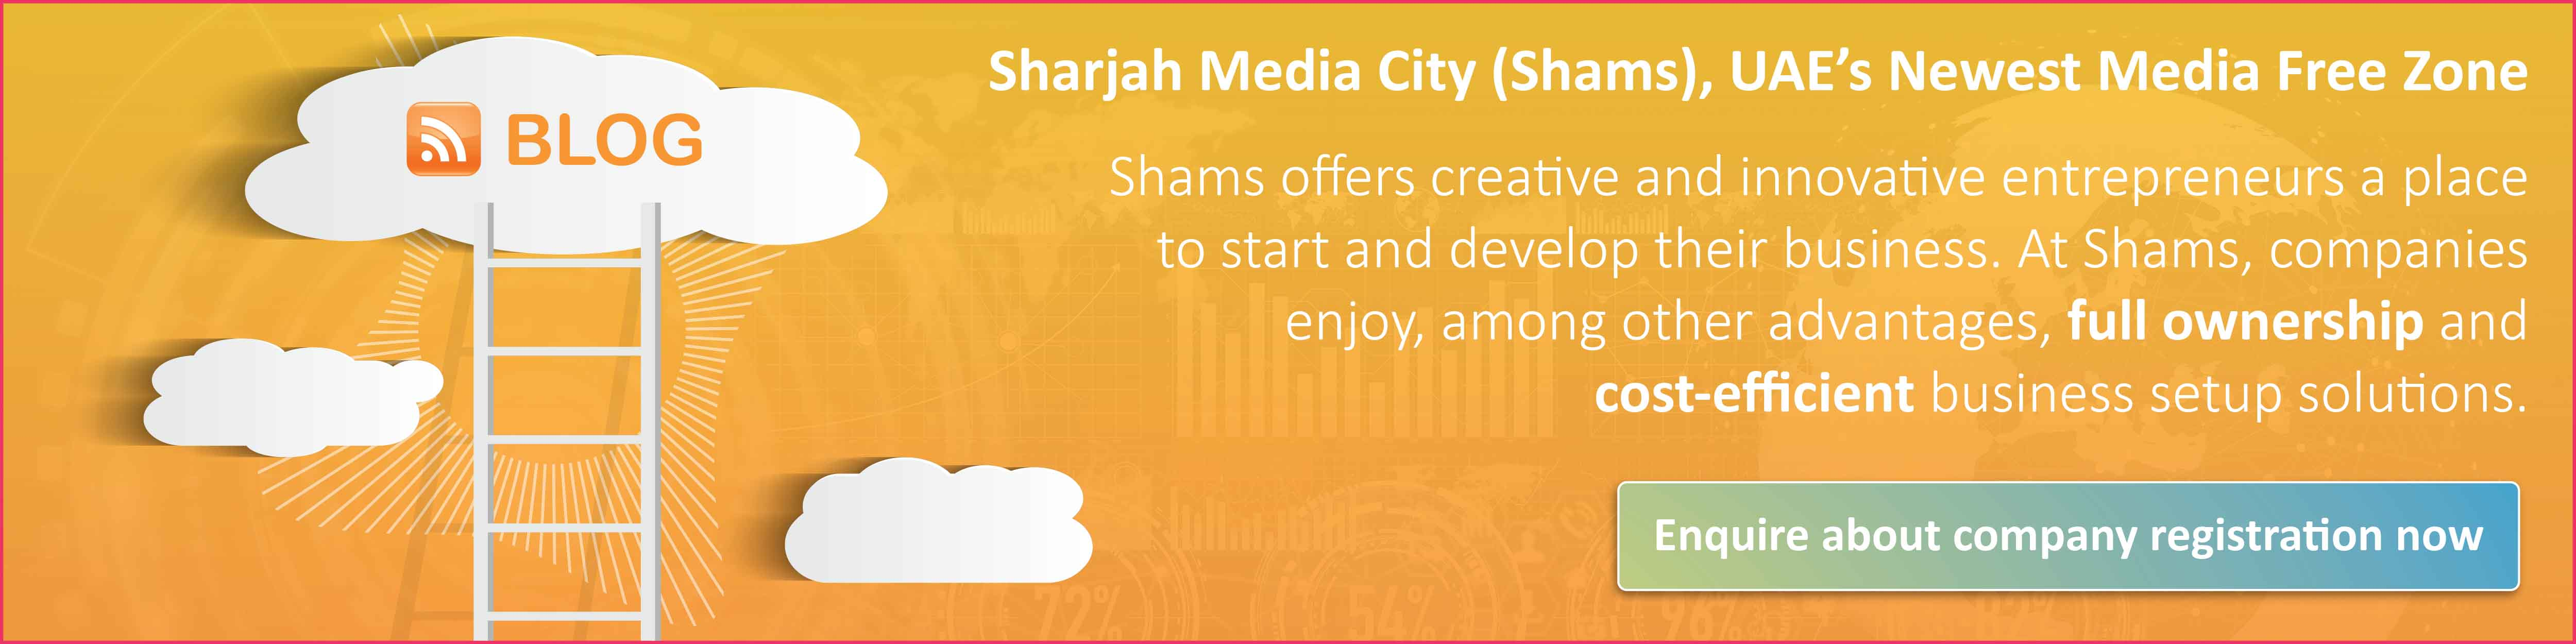 Contact Sharjah Media City (Shams)